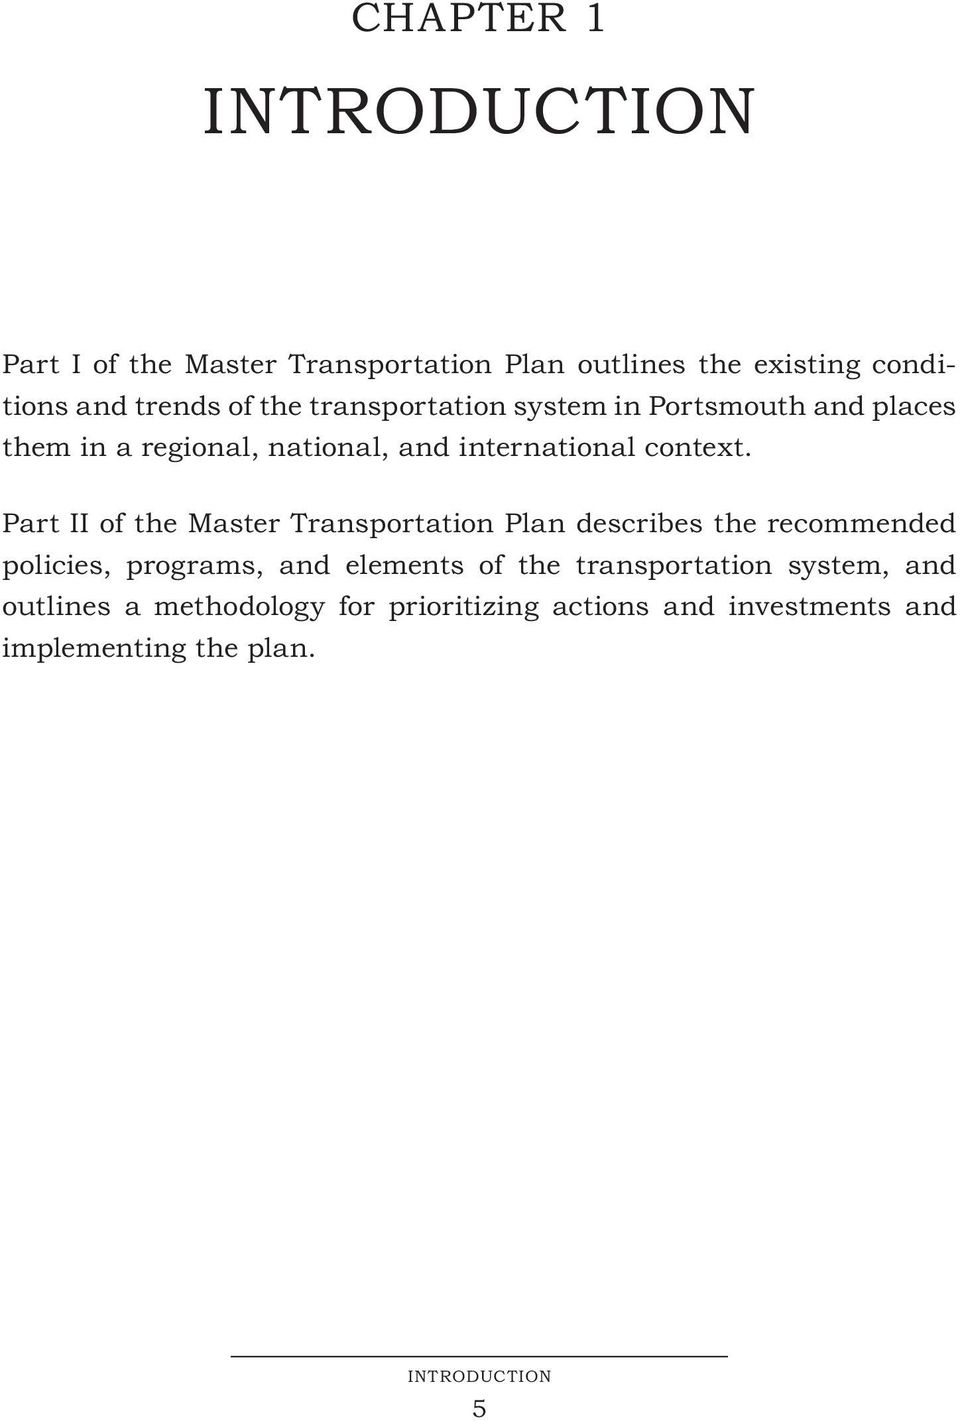 Part II of the Master Transportation Plan describes the recommended policies, programs, and elements of the